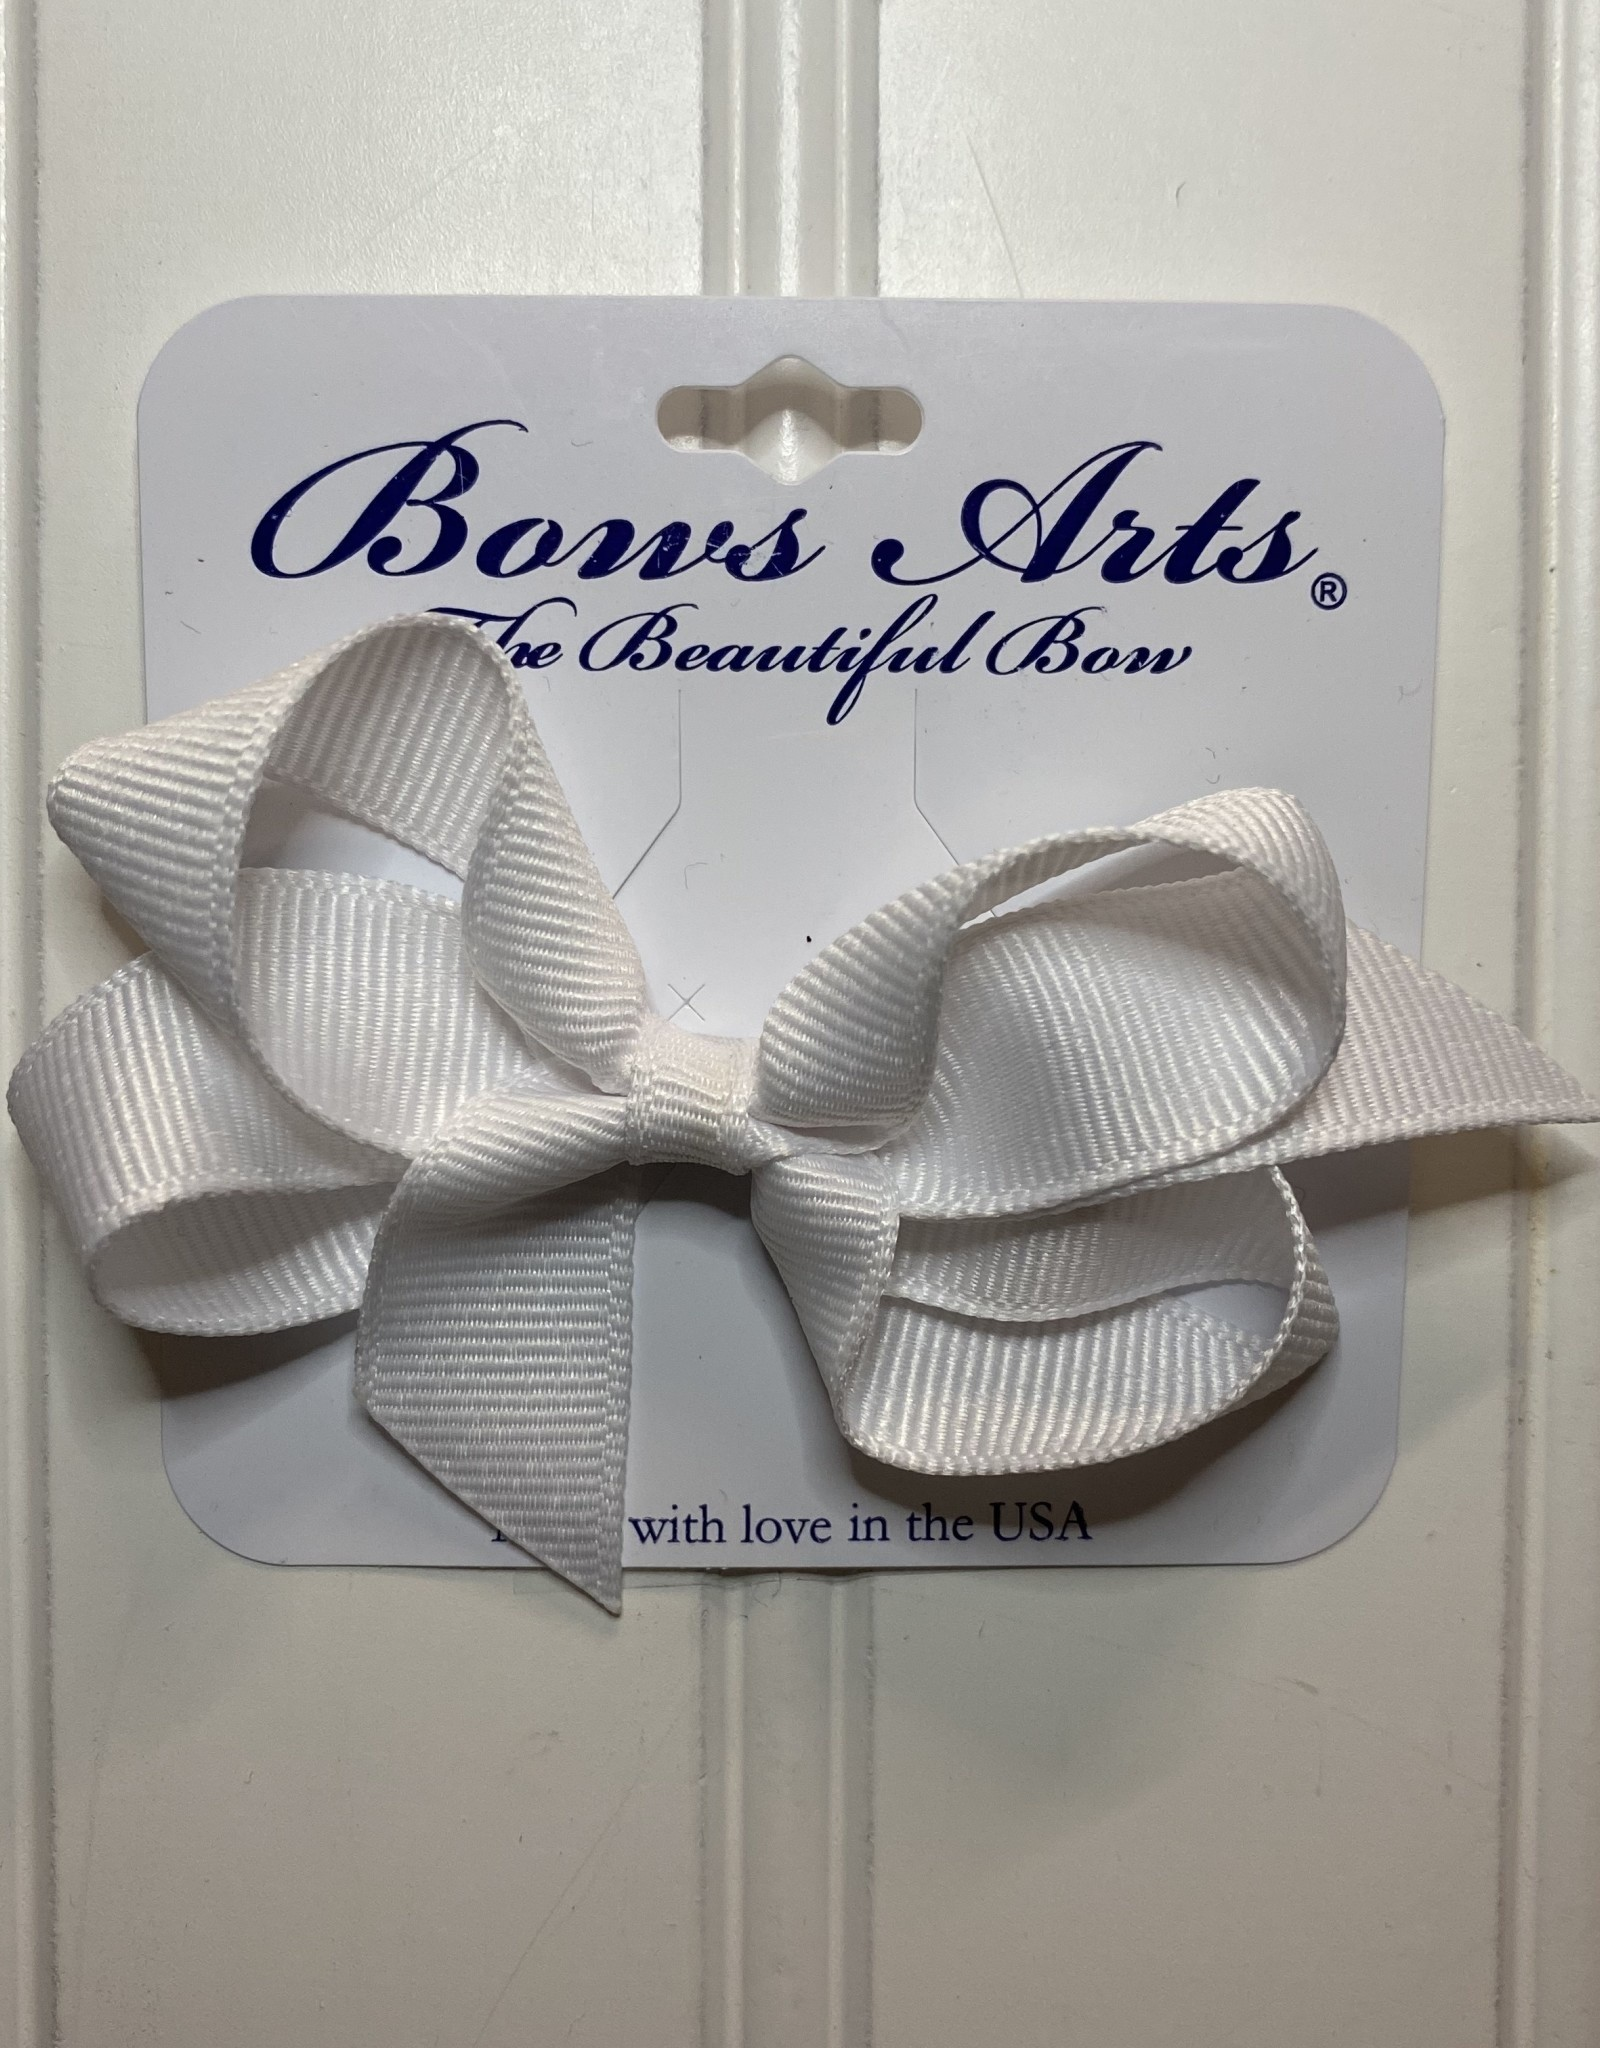 "Bows Arts Toddler Classic Bow 3"" - White"